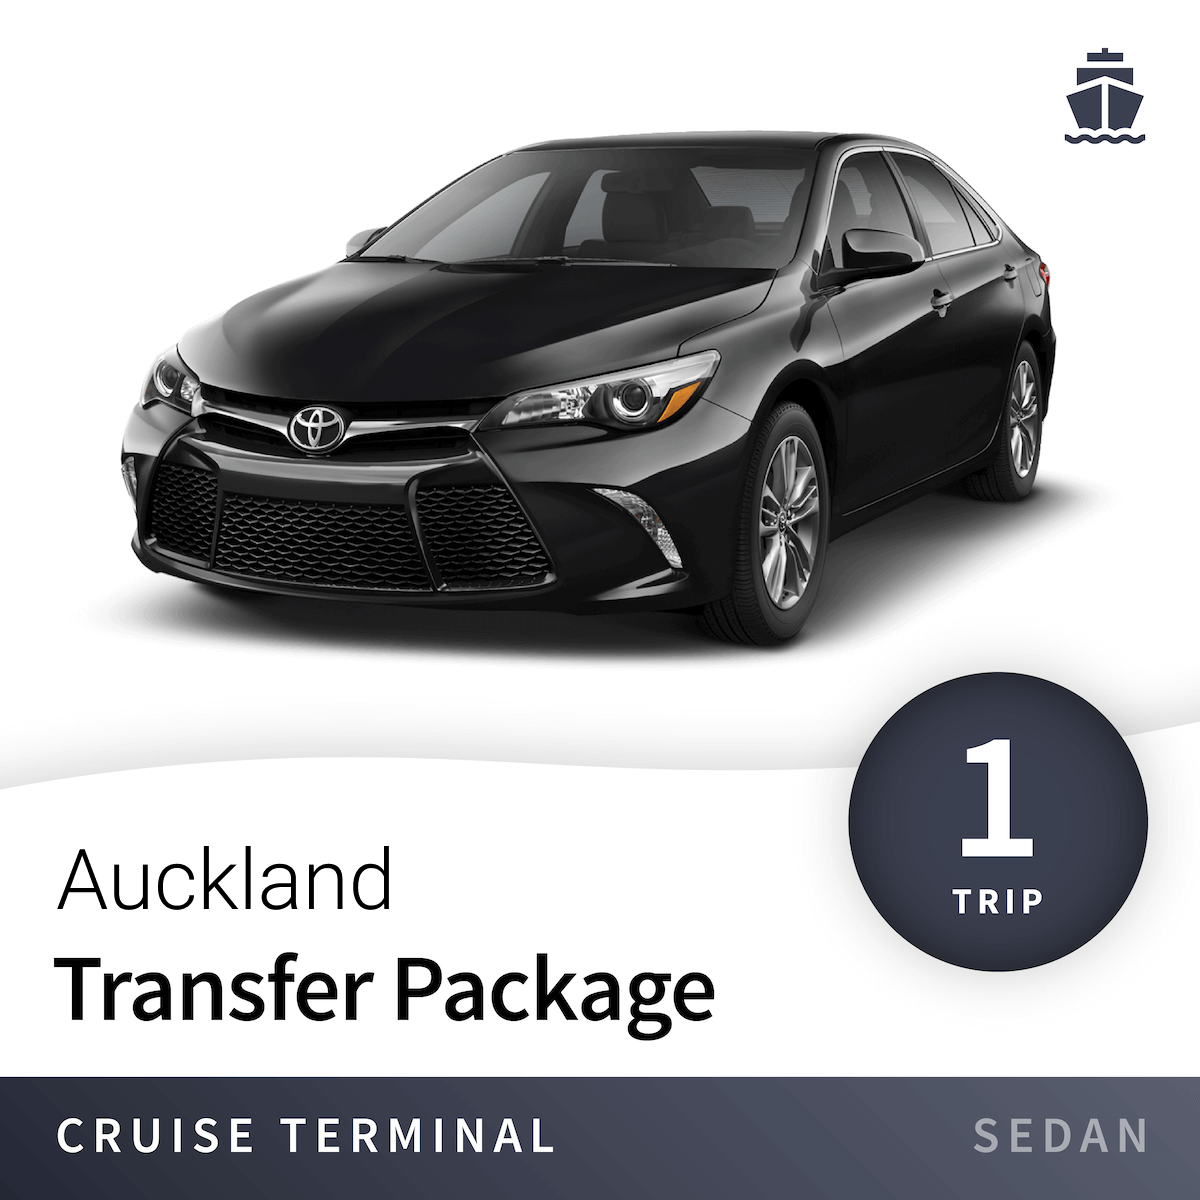 Auckland Cruise Terminal Transfer Package – Sedan (1 Trip) 10